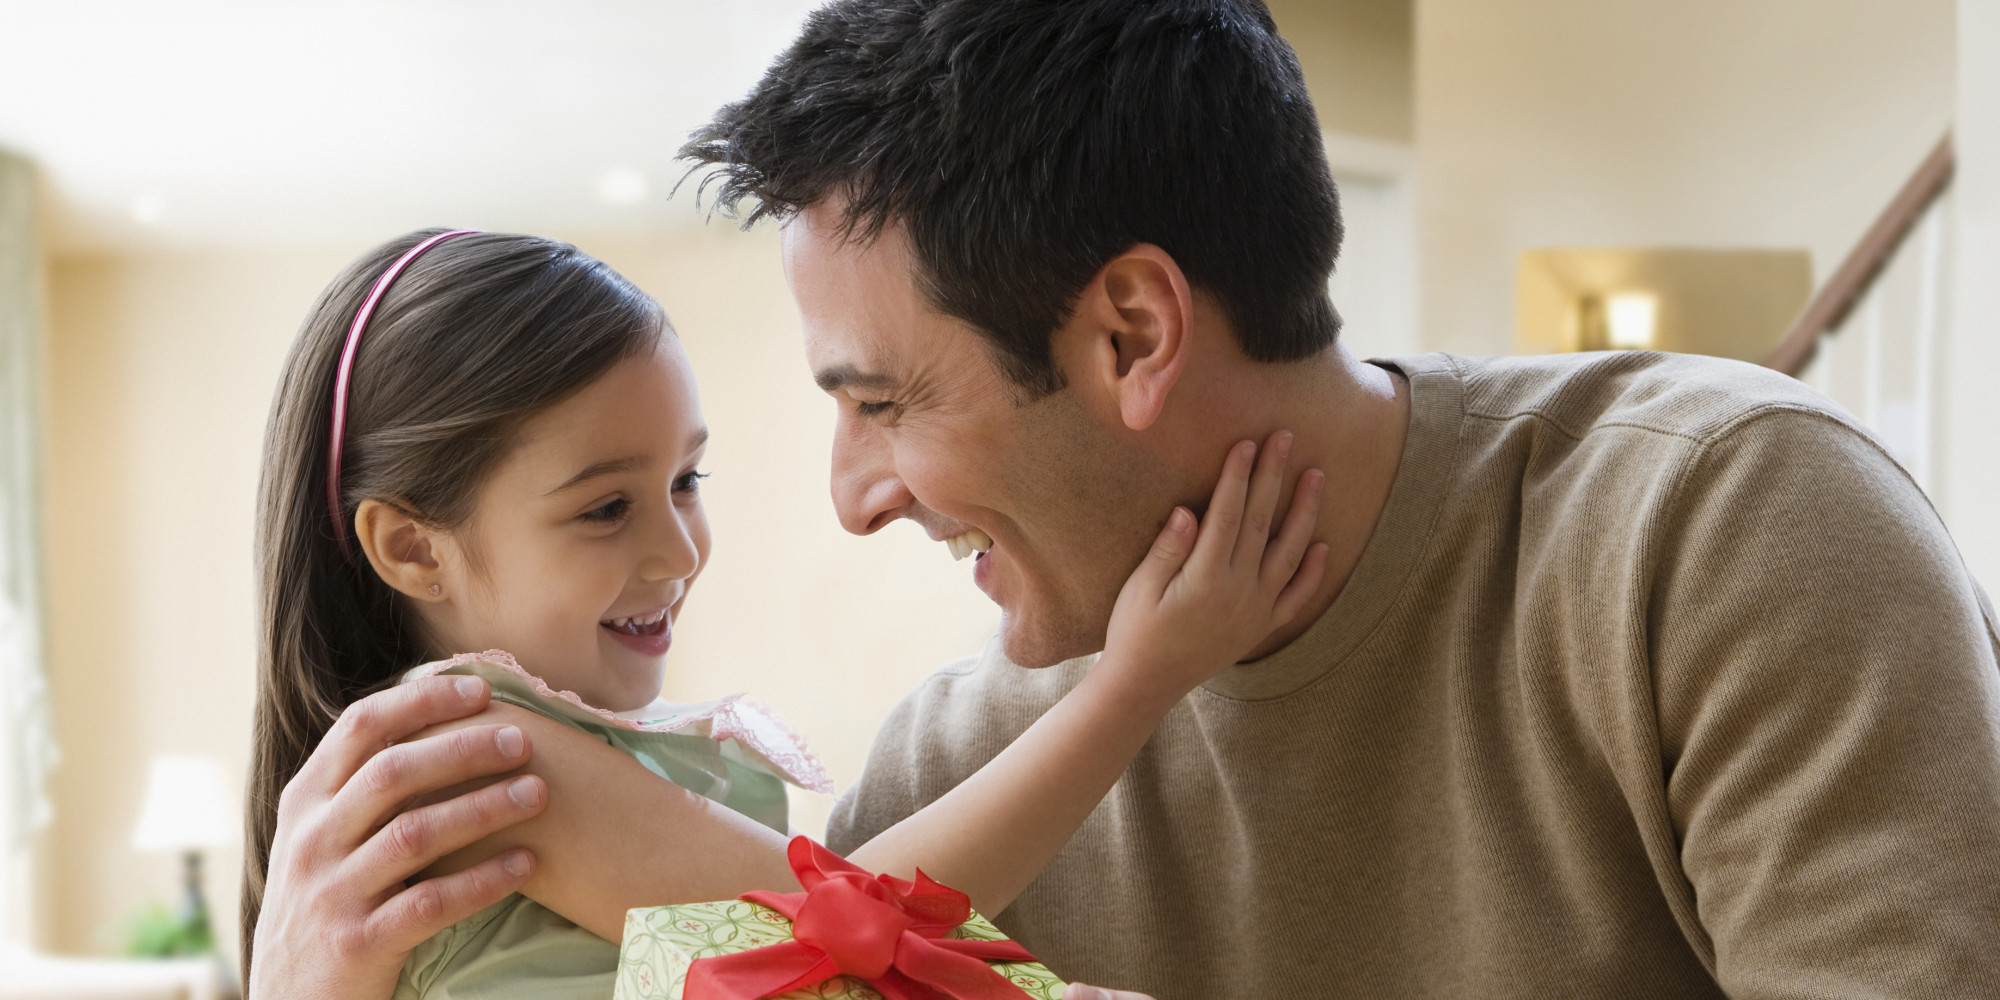 Health : Most precious gift for your father